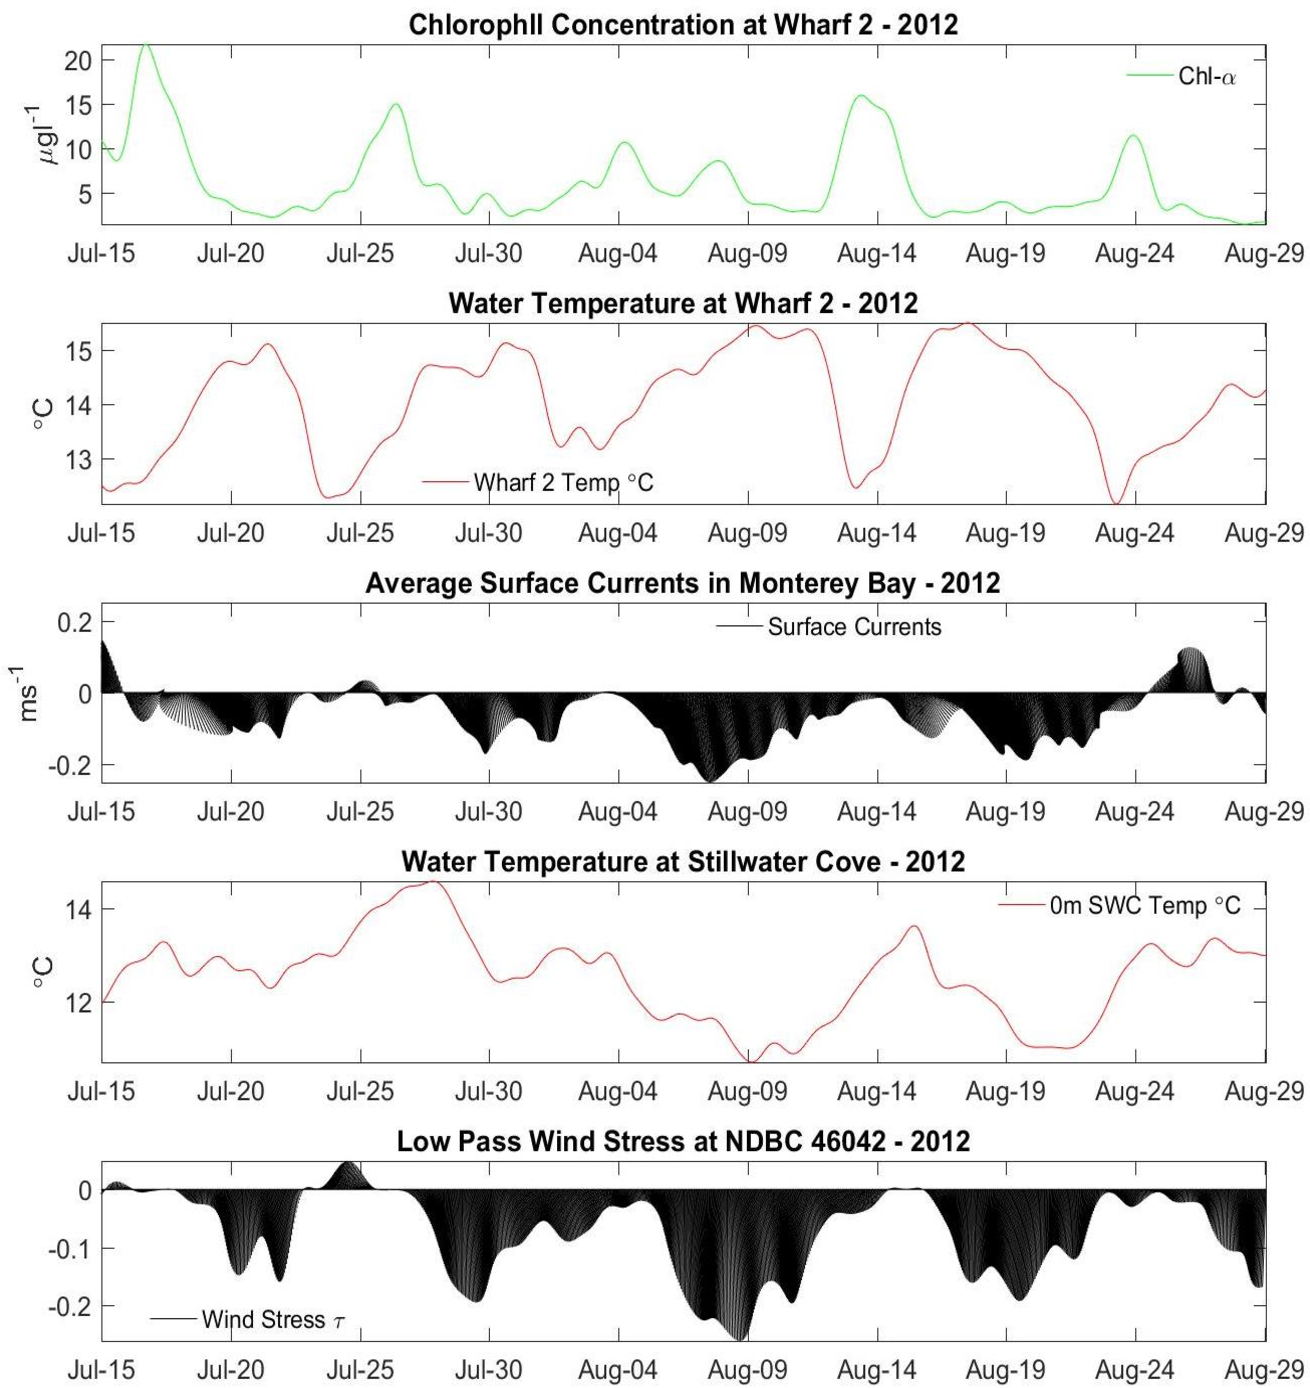 Physical factors influencing phytoplankton abundance in